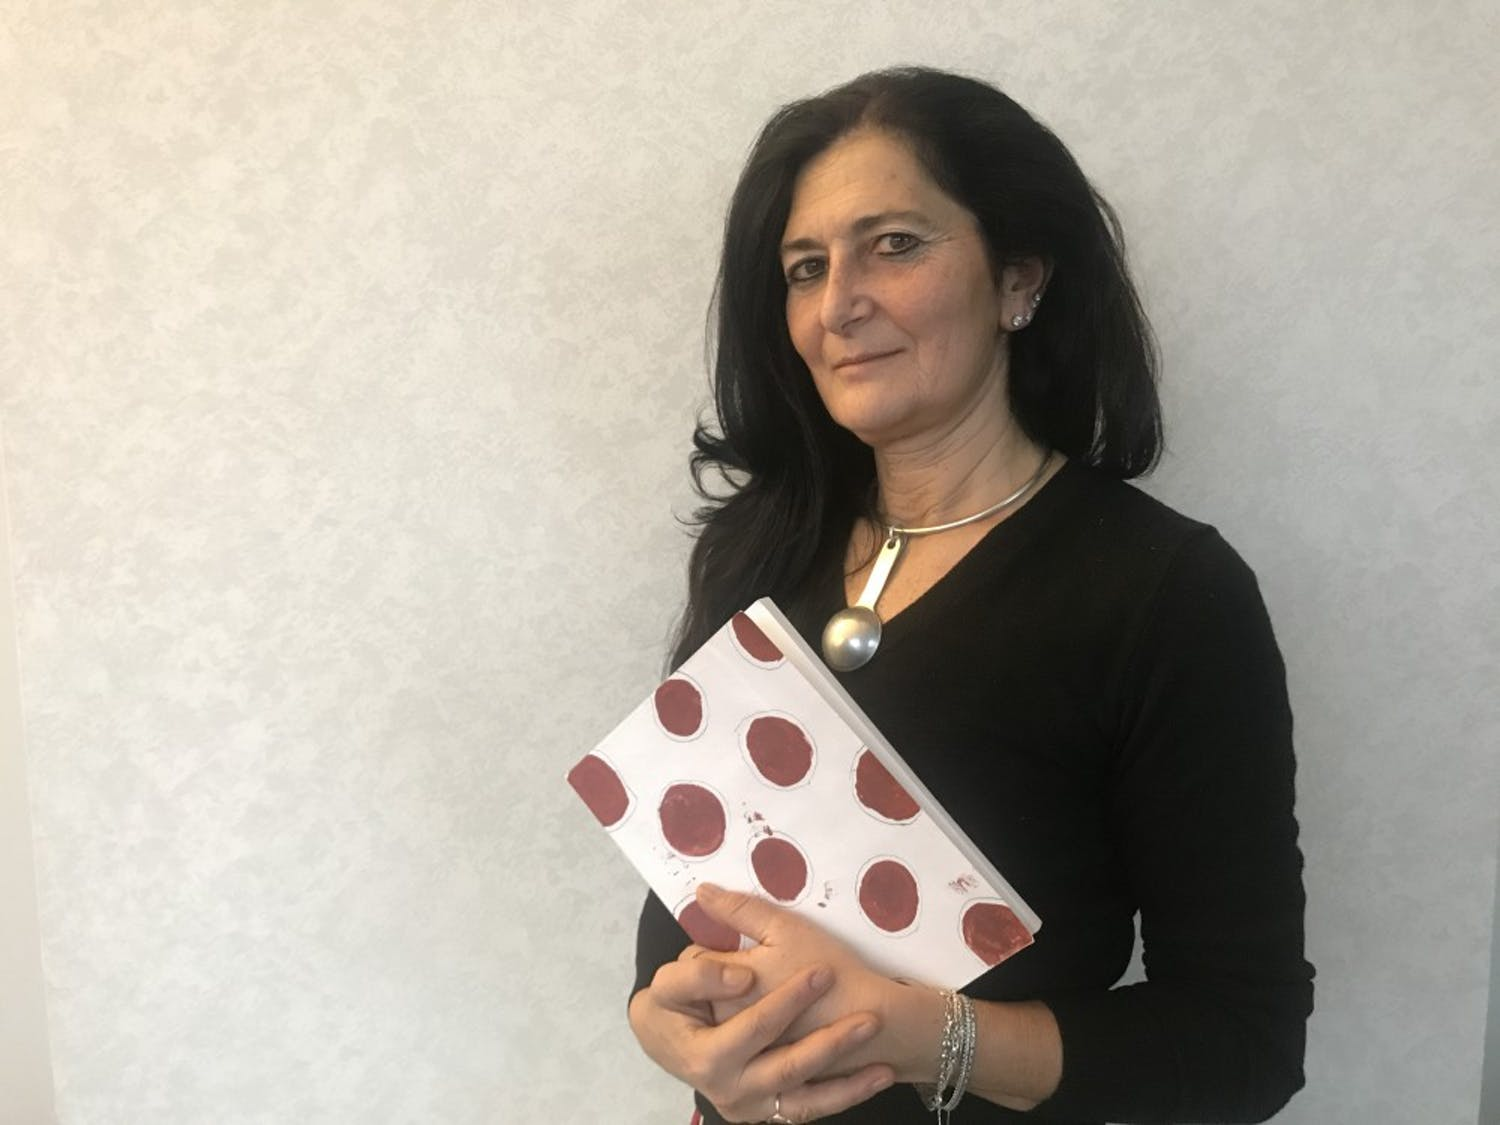 Manuela De Leonardis poses with her book 'The Blood of Women: Traces of Red on White Cloth' after her lecture at the FedEx Global Education Center.